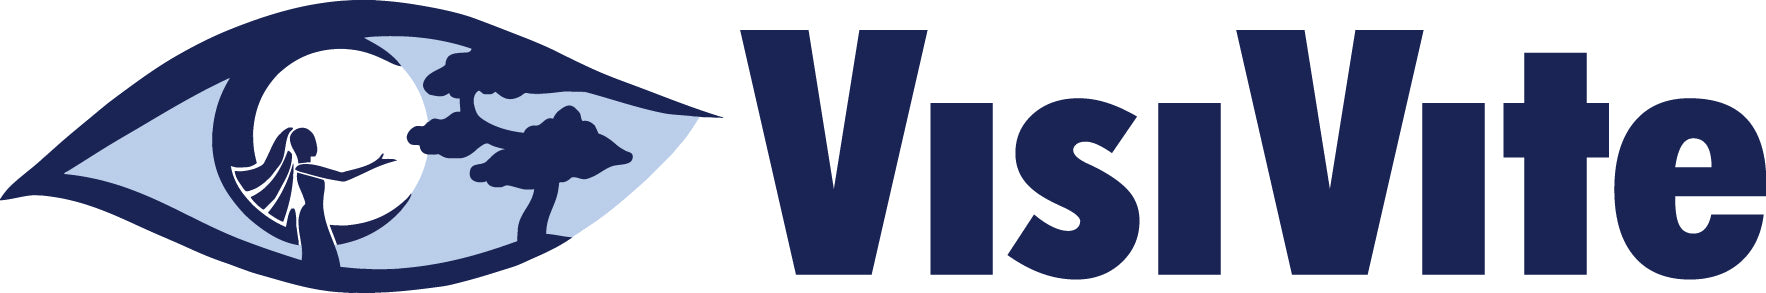 Logo of VisiVite.com makers of Professional Formulas for Ocular Support